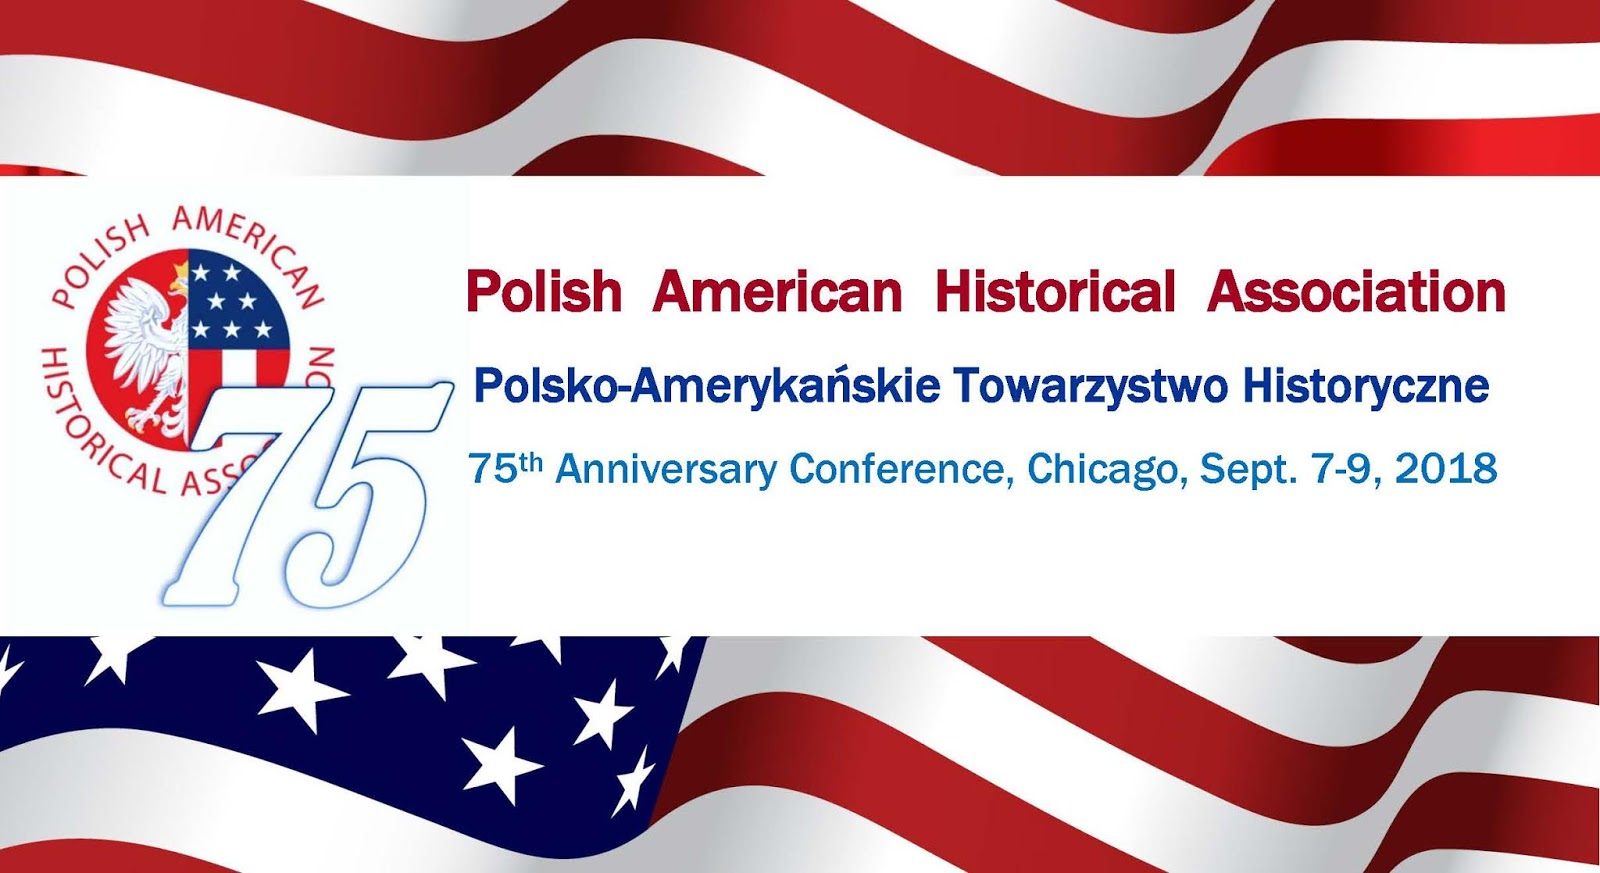 the association is planning a three day event to take place at loyola university in chicago the director of the polish studies